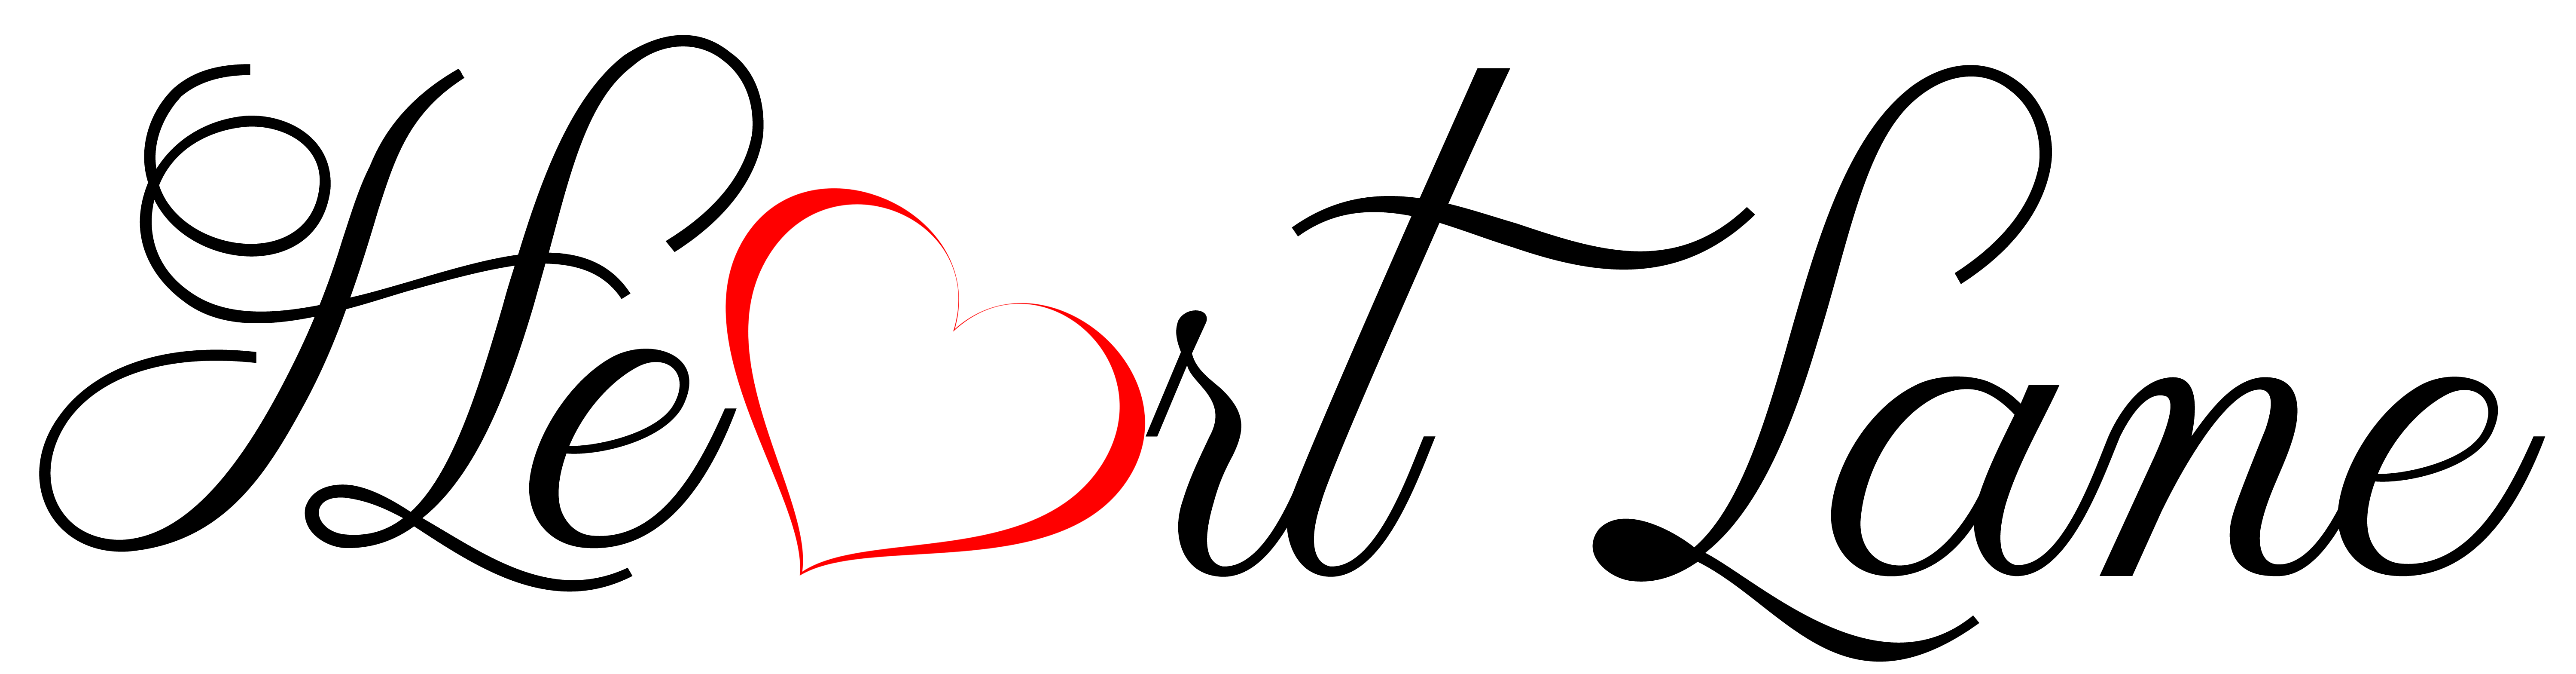 Clipart hearts calligraphy. Welcome to heart lane